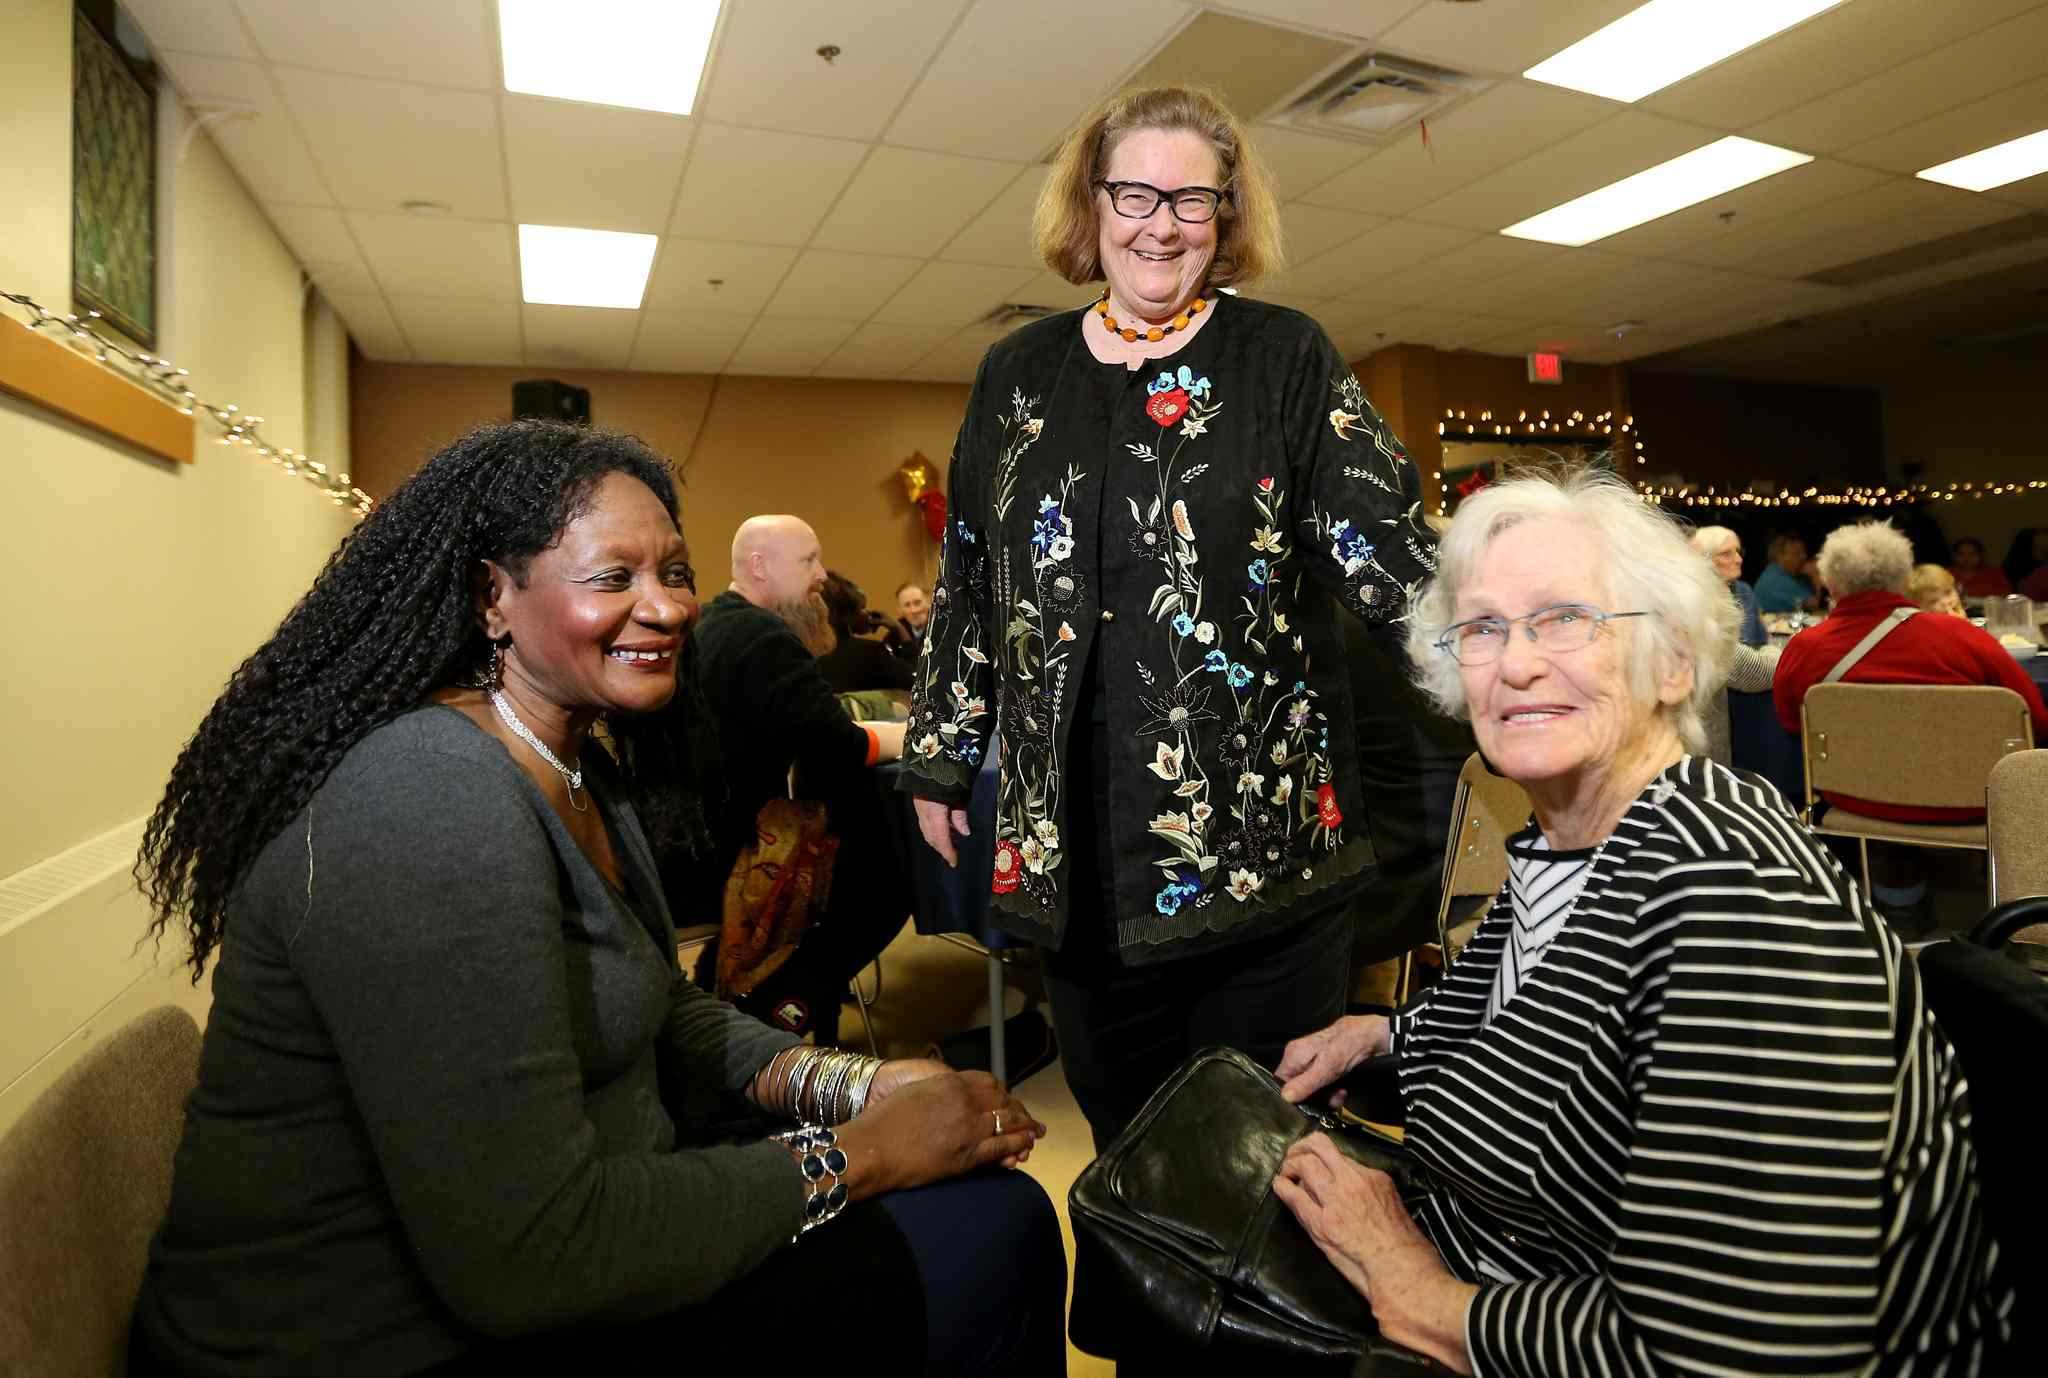 Rev. Lorna Howell, Rev. Cathy Campbell and her mother, Mary Campbell, visit at WestEnd Commons during Cathy's retirement dinner Jan. 16.